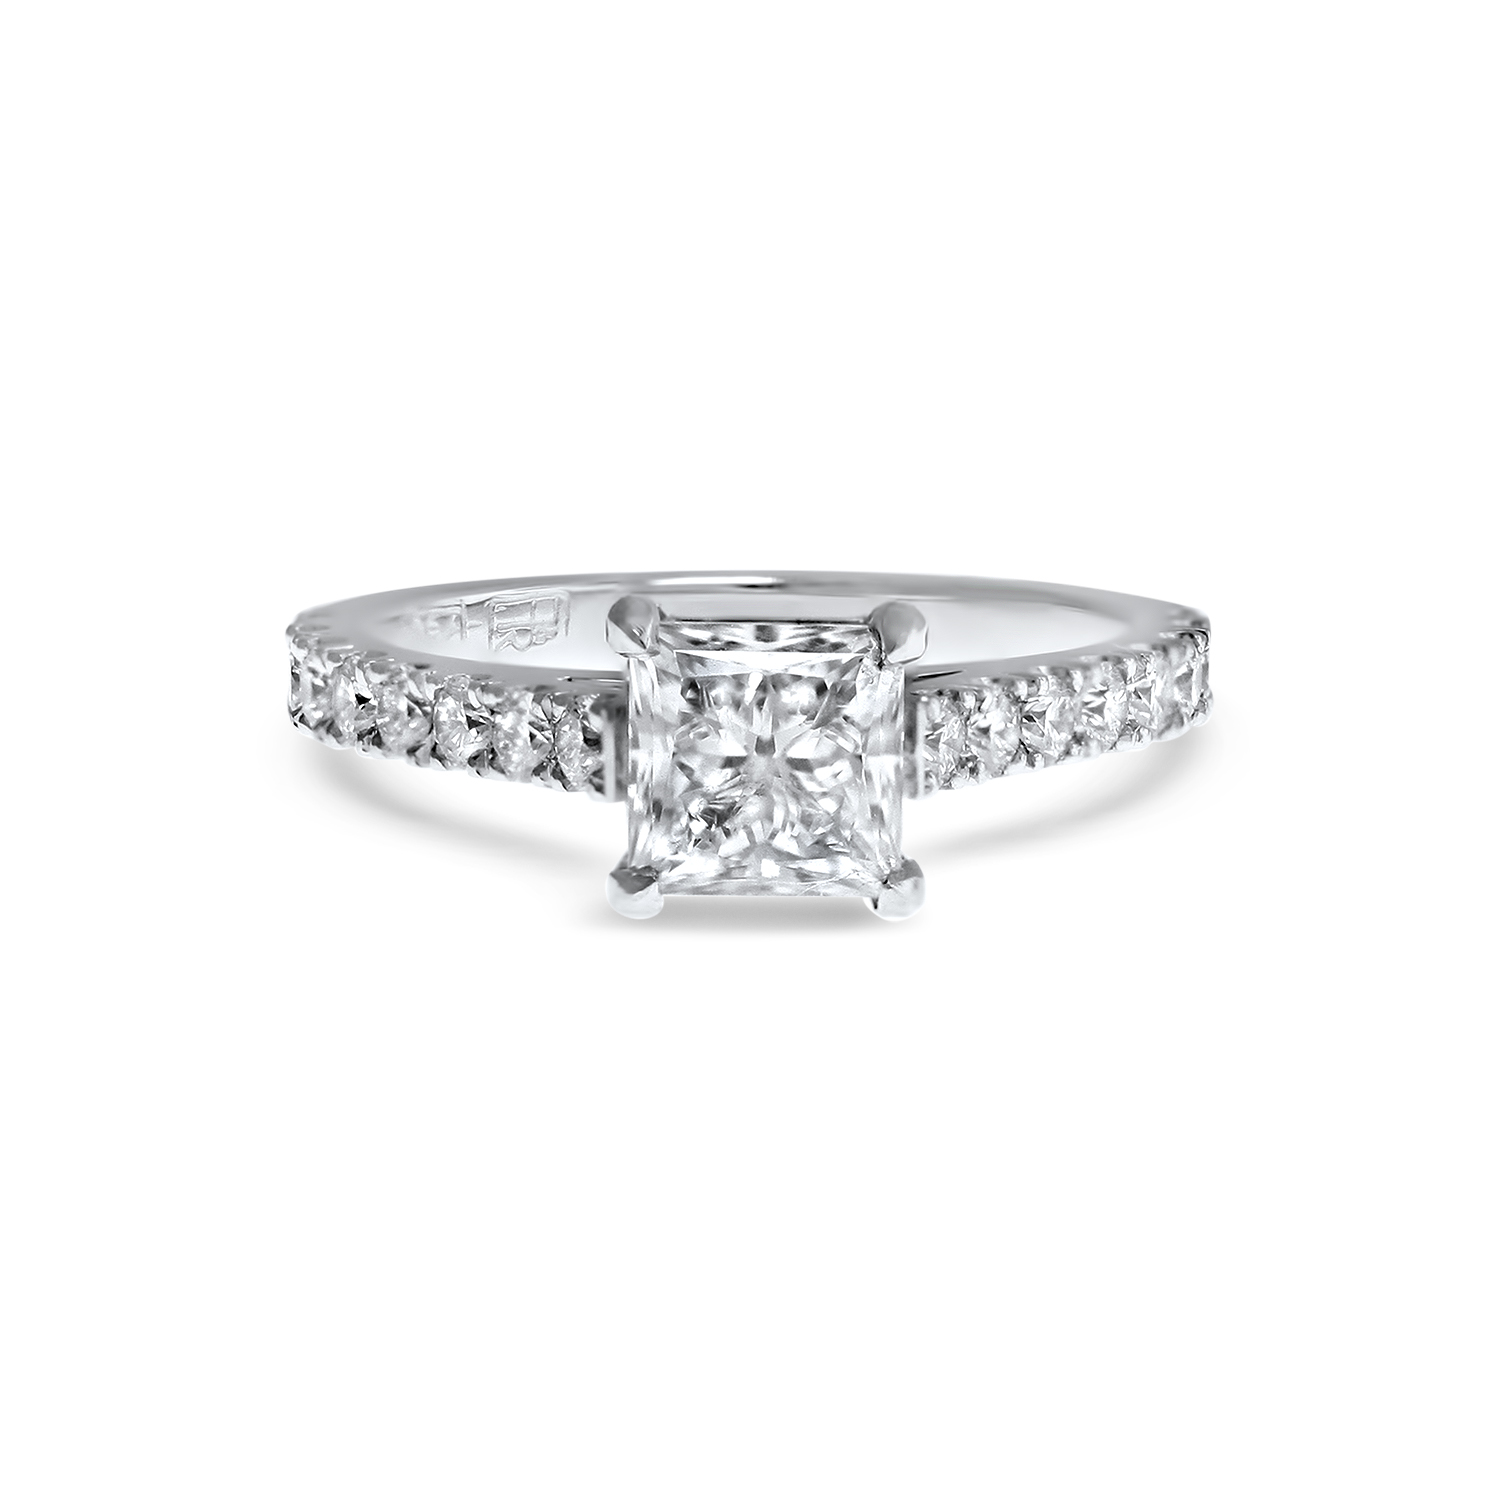 cathedral rings vfsnxxz diamond platinum jewellery engagement princess cut ring cool settings